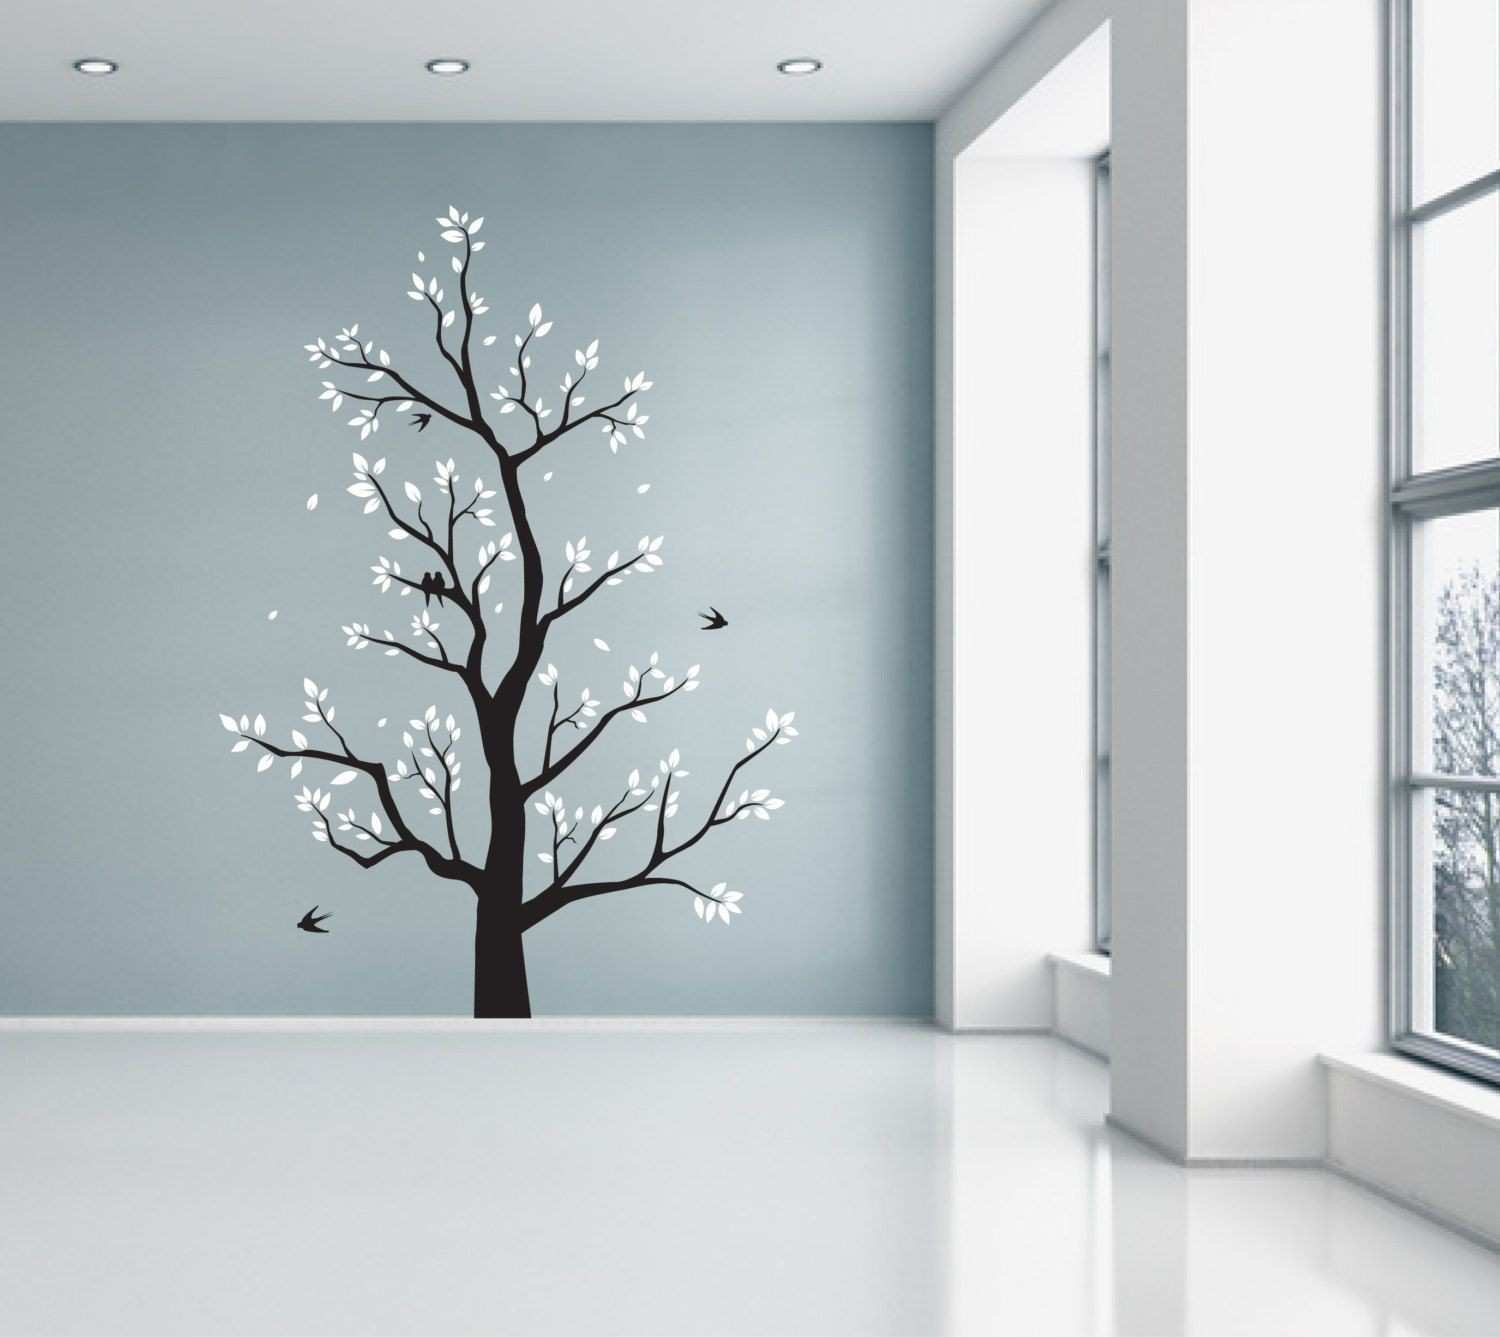 Tree Template for Wall